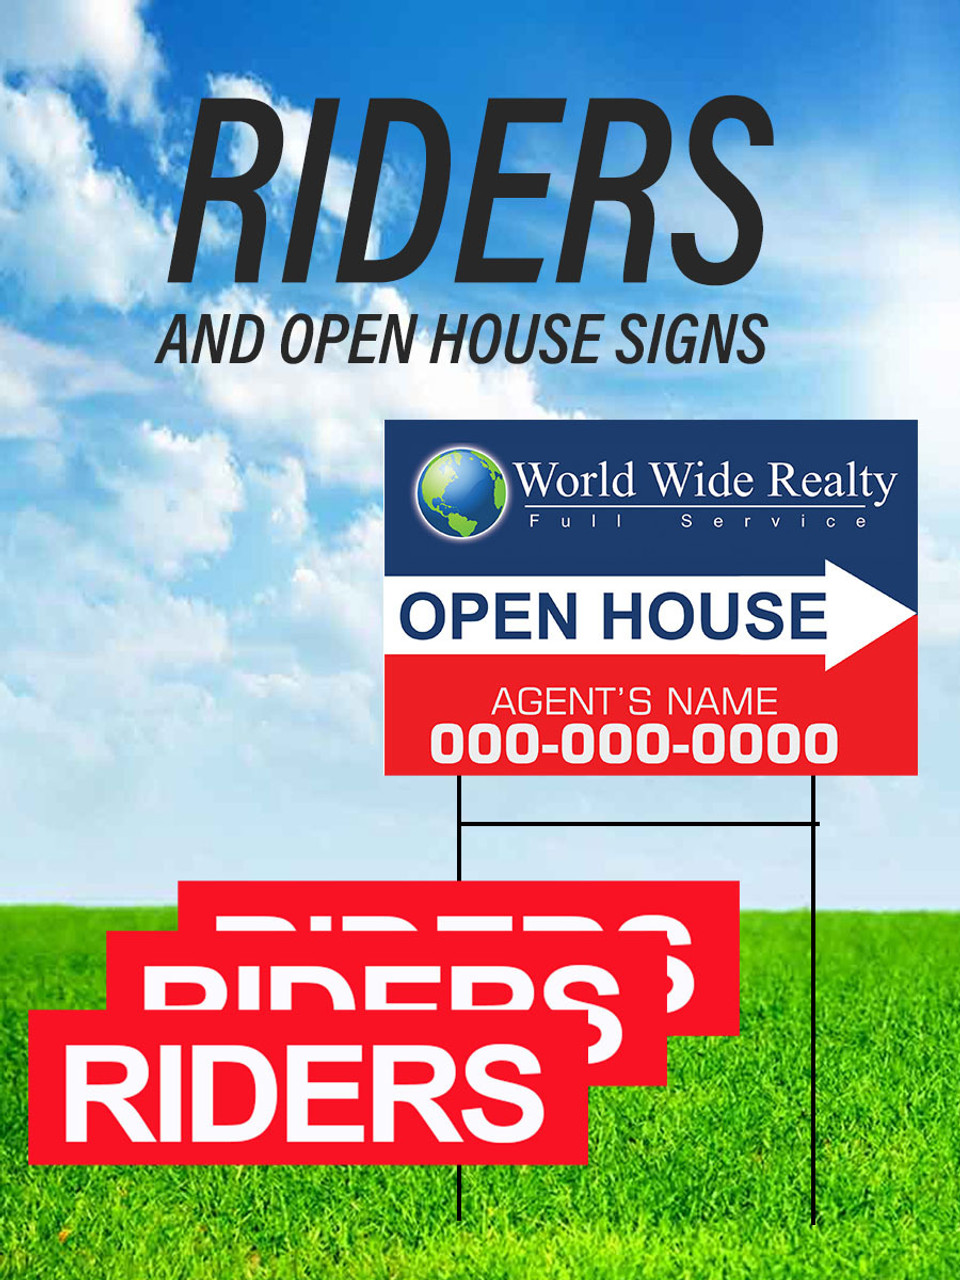 Riders and Open House Signs